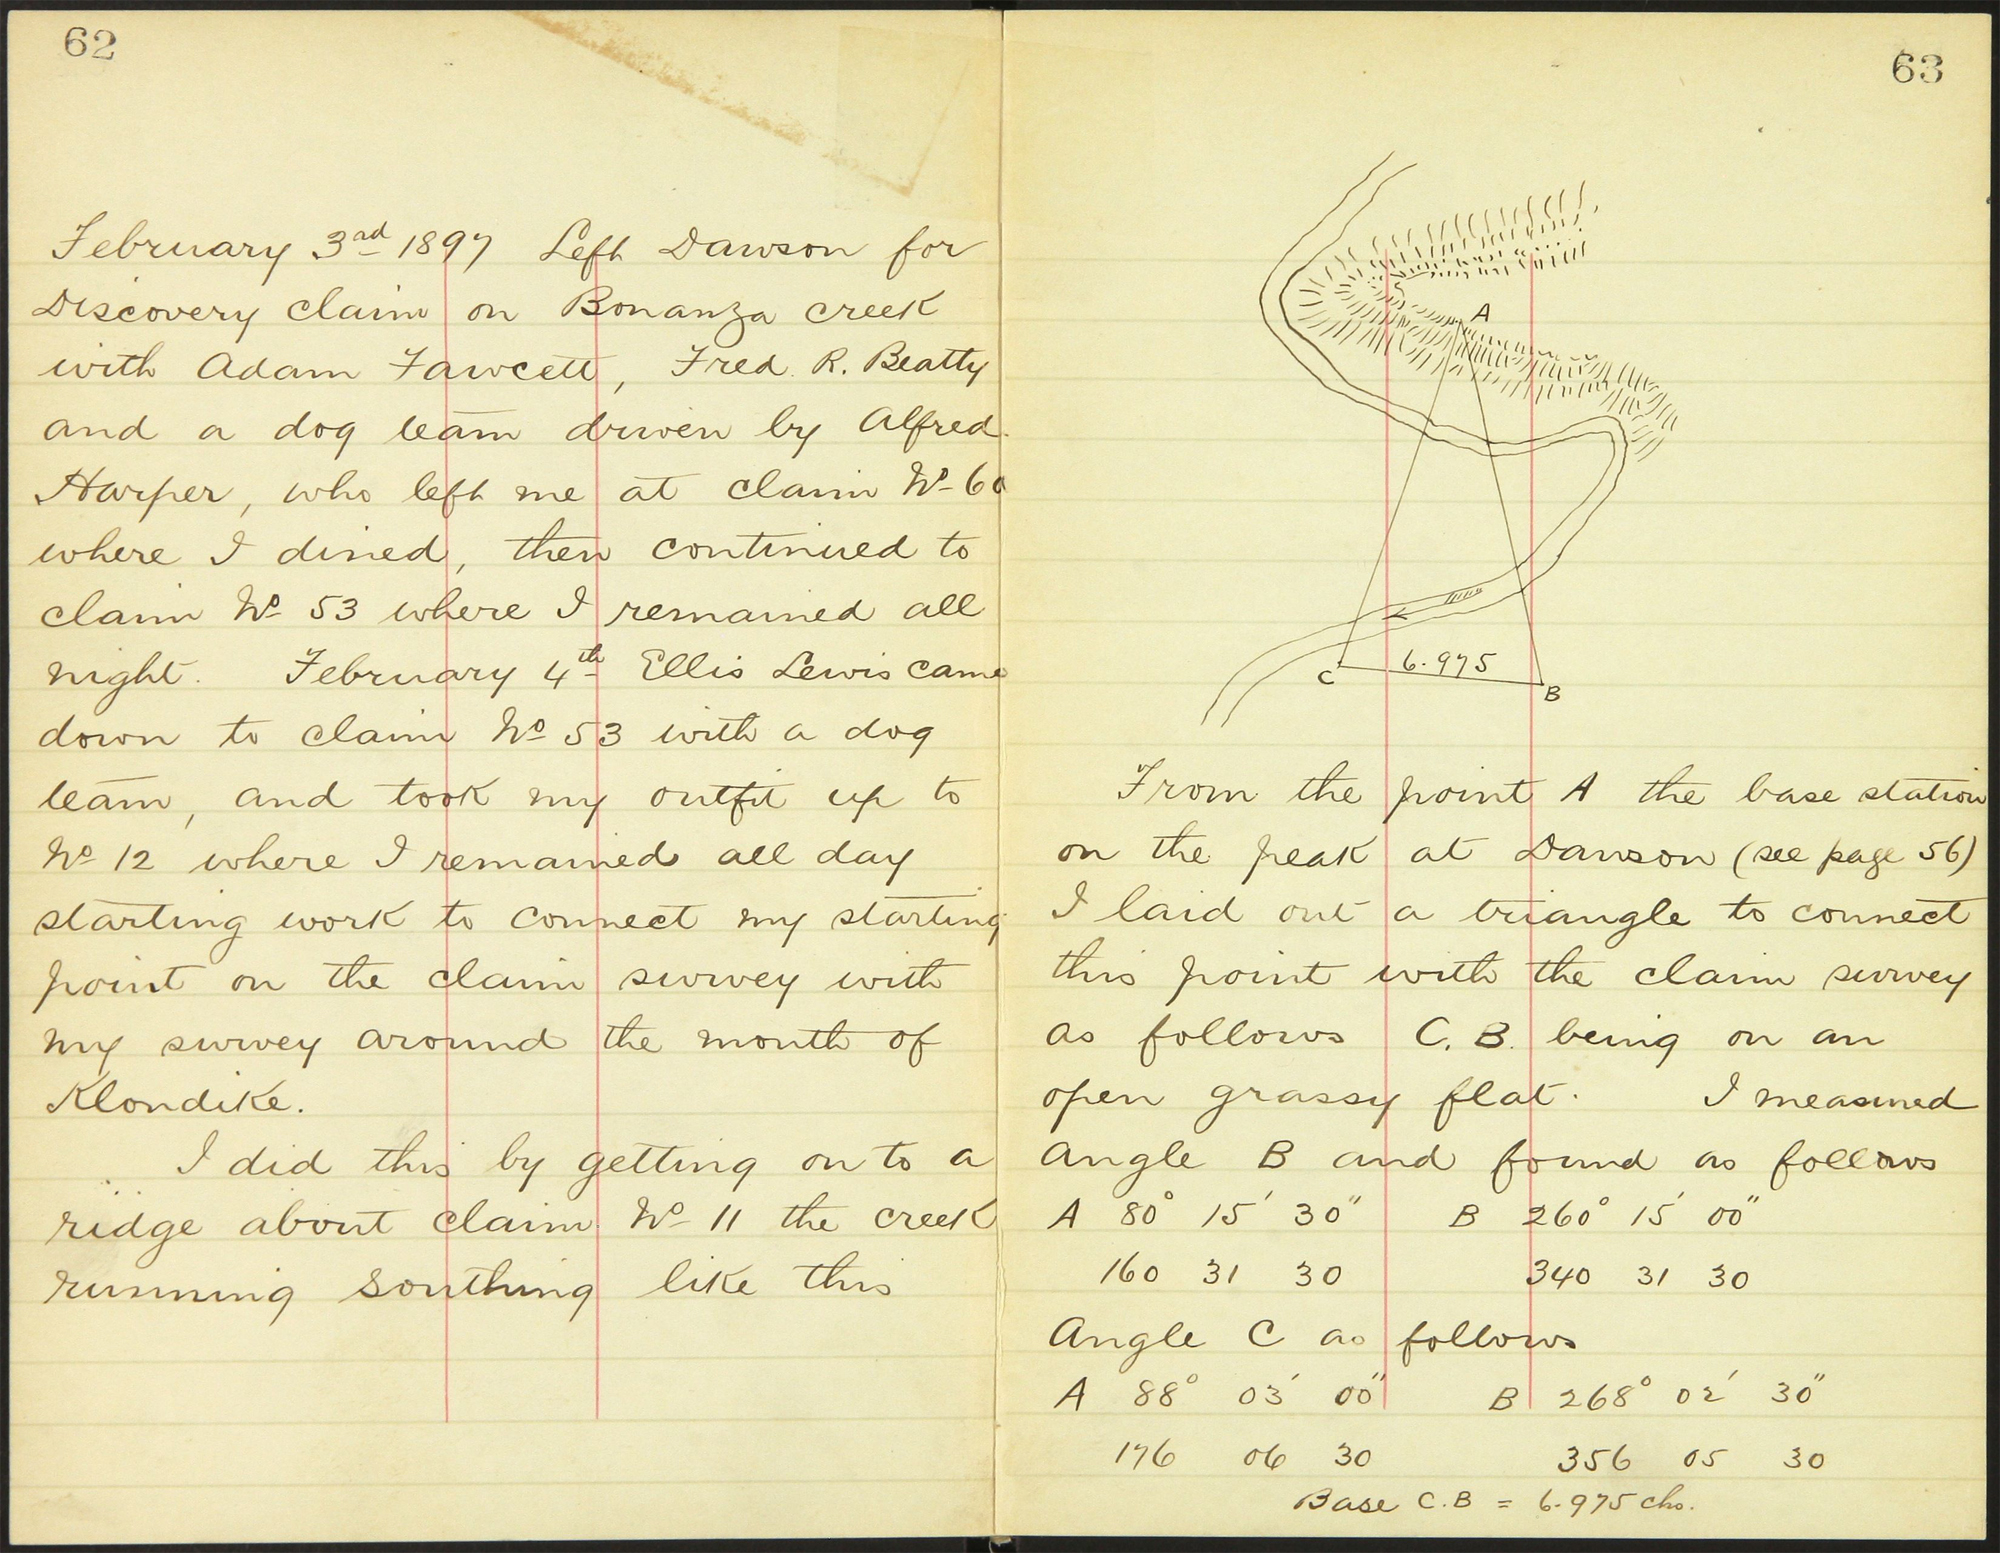 Two handwritten pages from a Dominion land surveyor's field book explaining the daily details about the modes of transportation, places for food, etc.